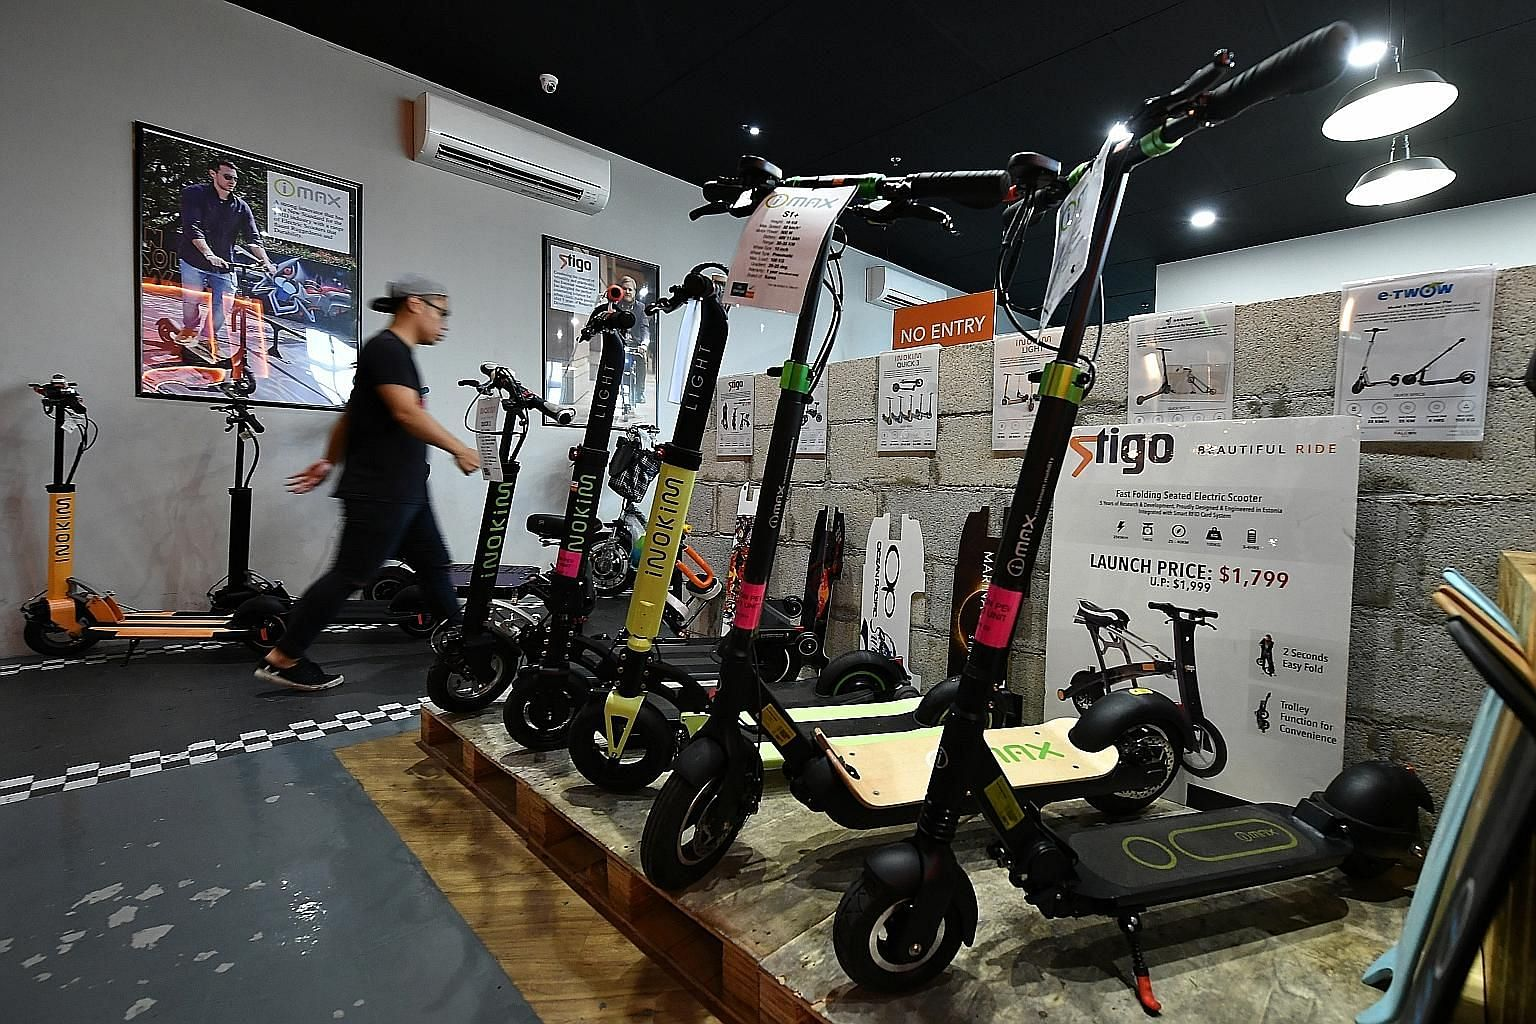 Electric scooters for sale at Falcon PEV. Its general manager Victor Lee said PMD sales have slowed by about 20 per cent, starting from a year ago, and attributed this partly to more retailers entering the market, along with news of the Active Mobili